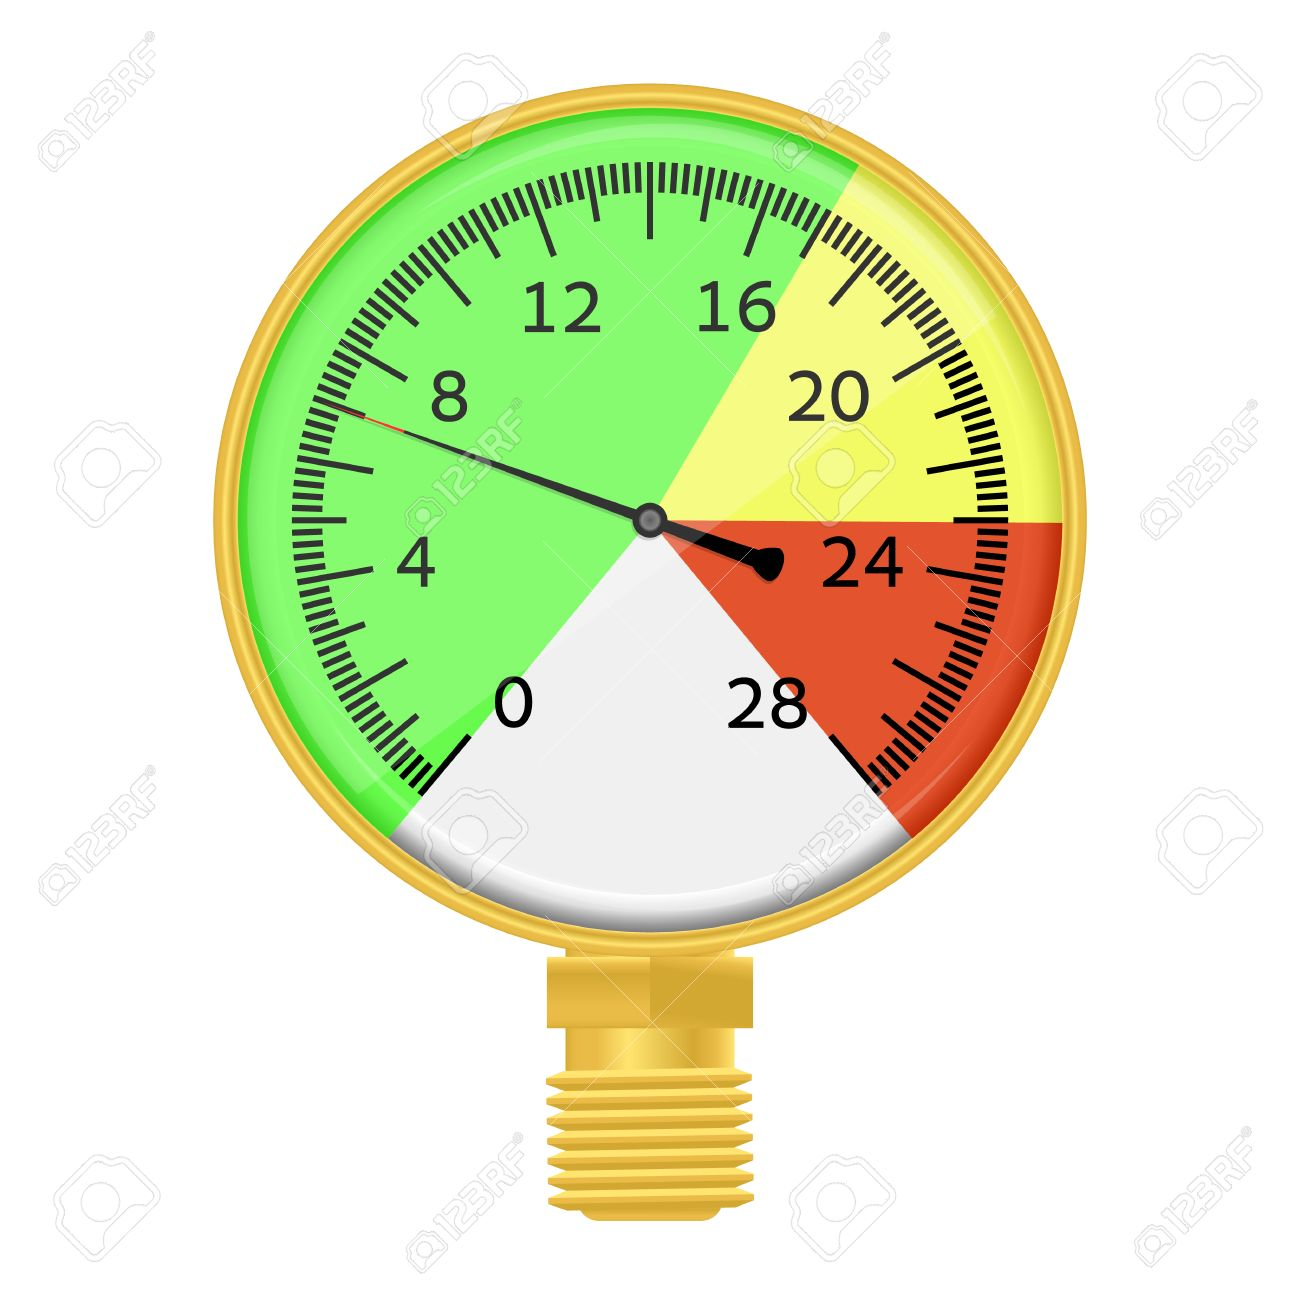 637 Pressure Indicator Stock Vector Illustration And Royalty Free ...